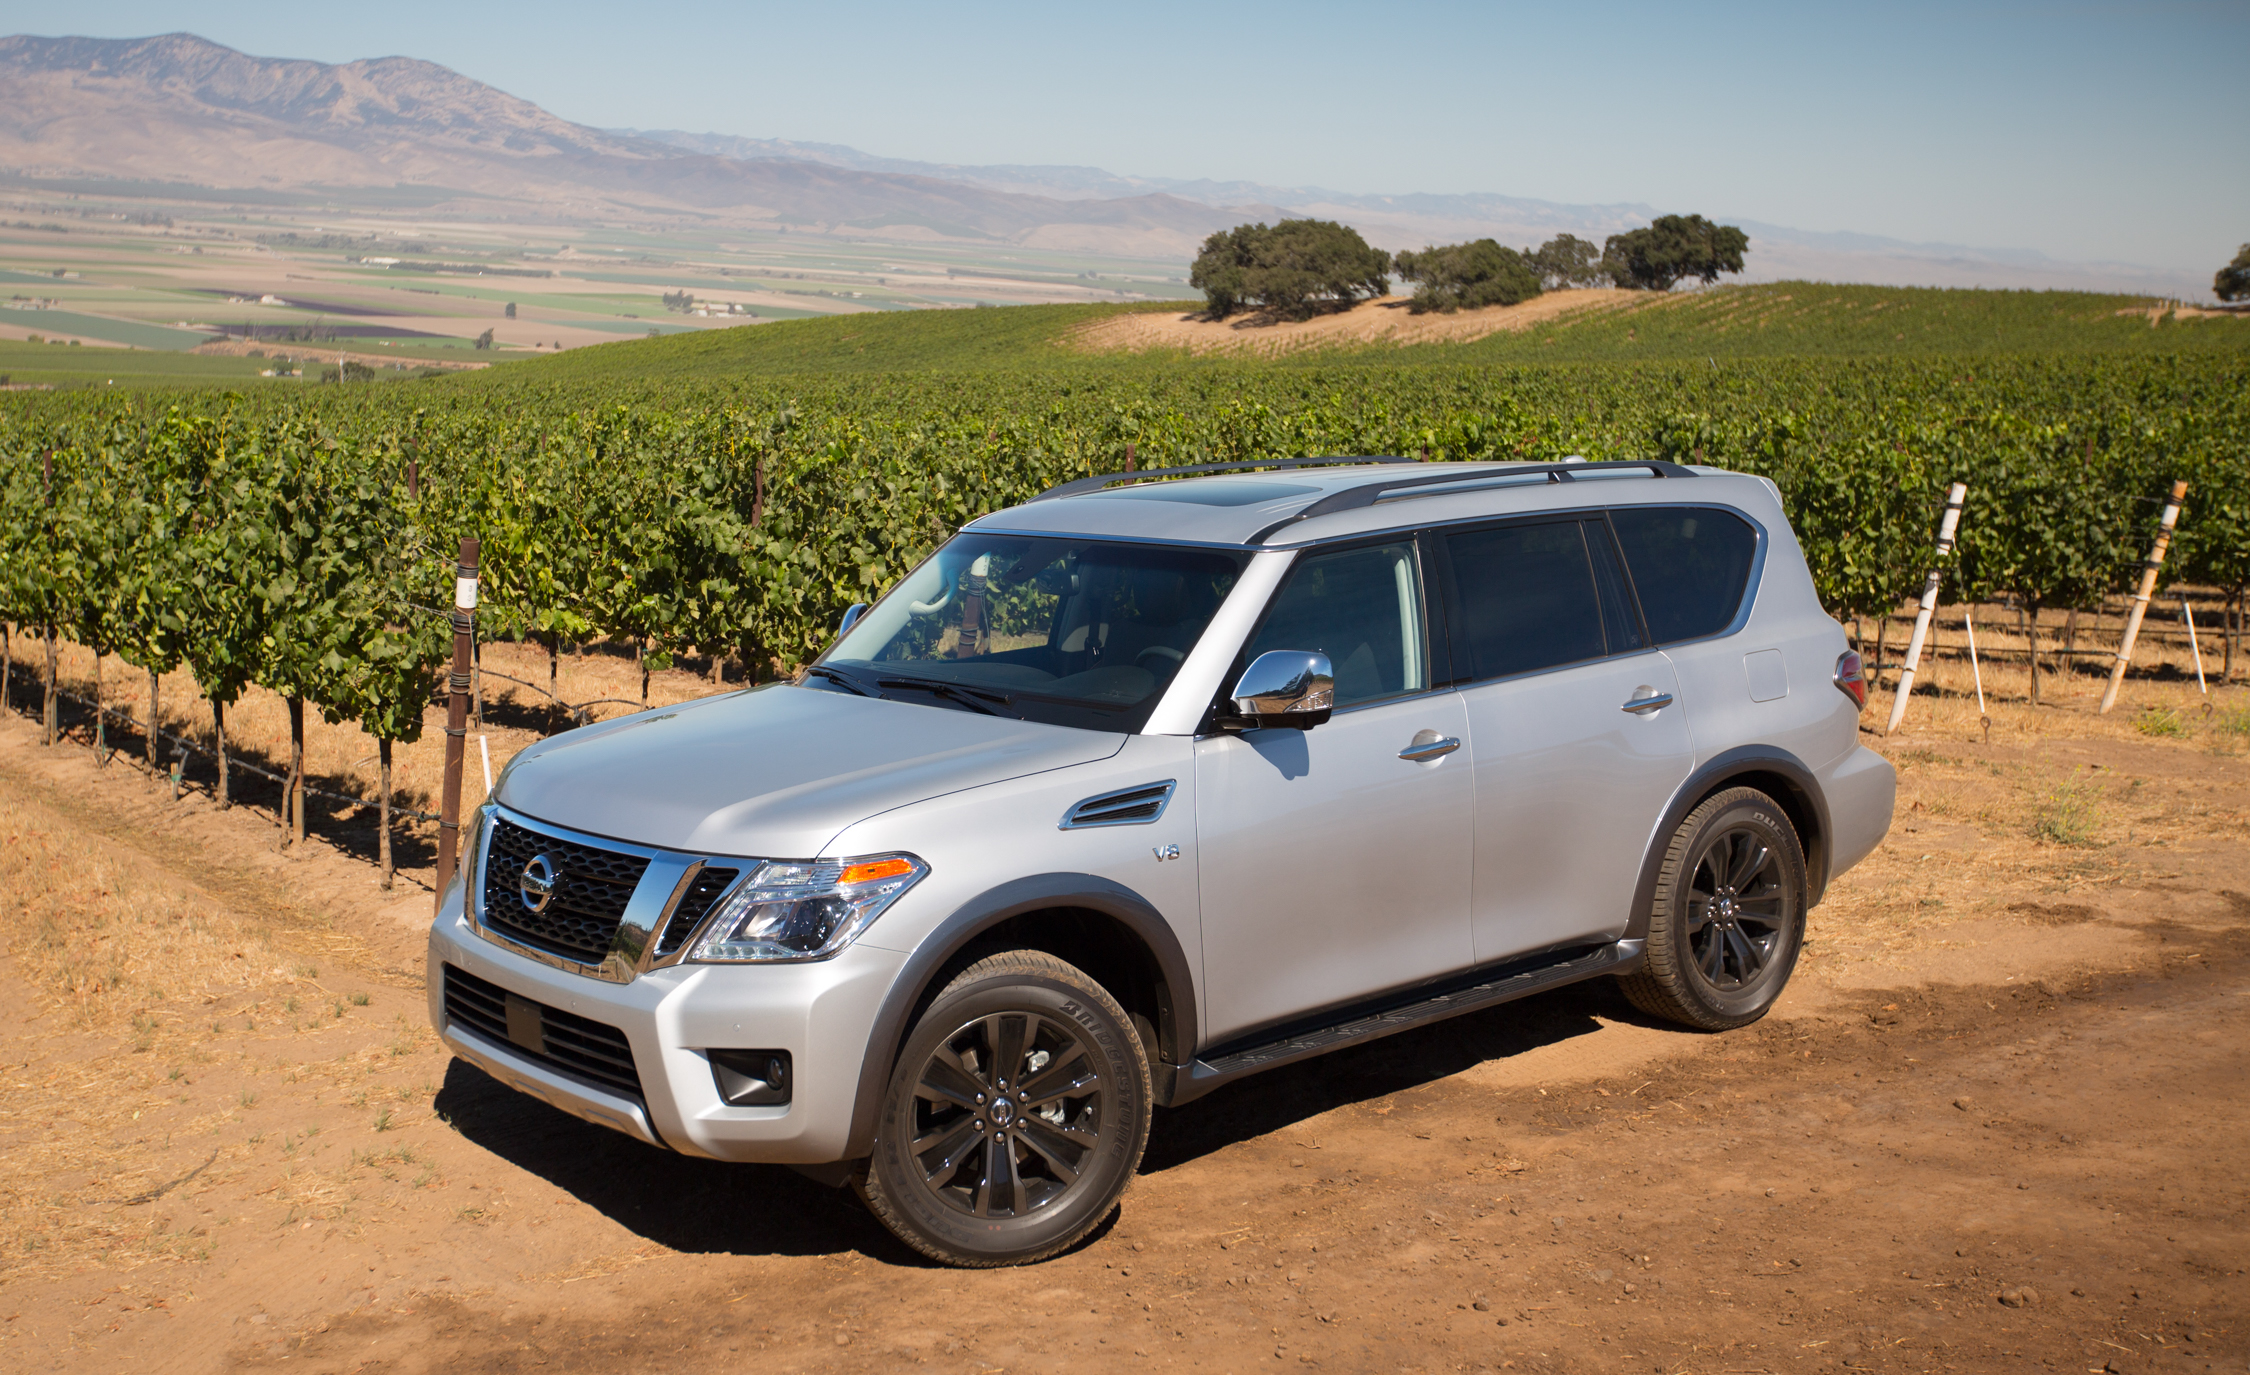 2017 Nissan Armada (View 14 of 27)